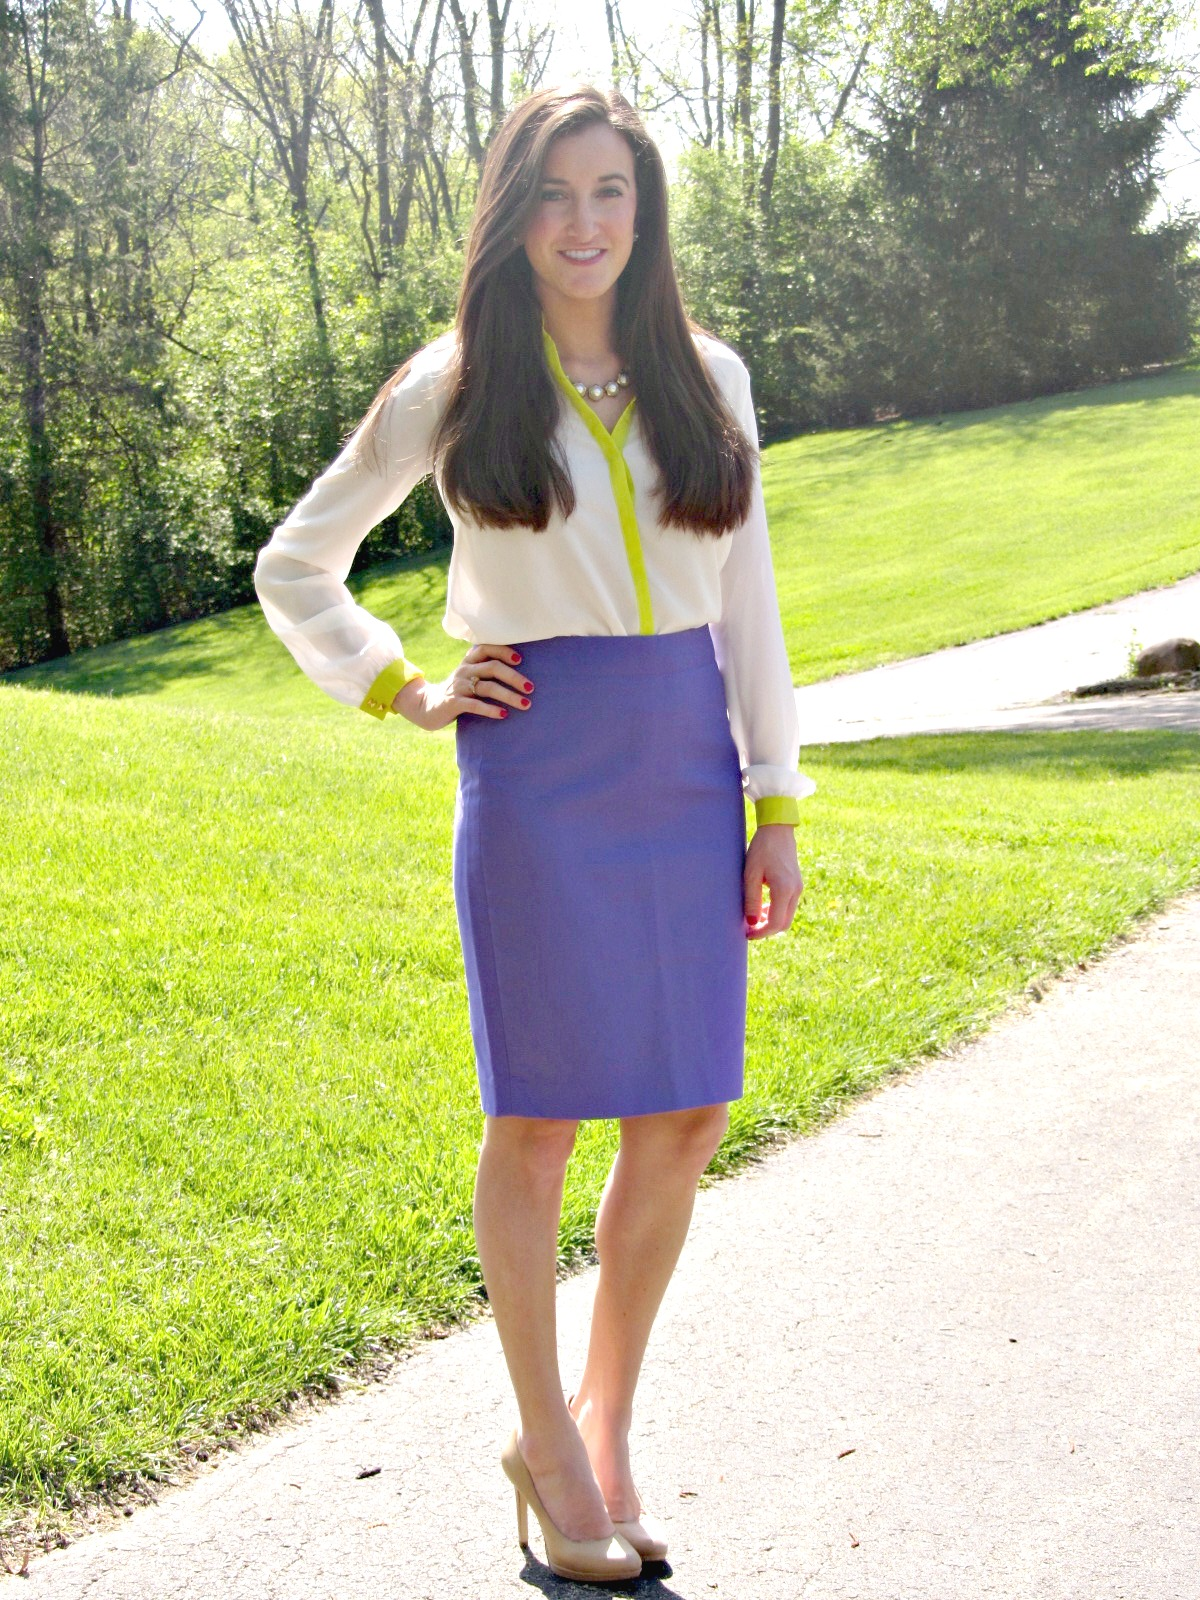 J.Crew No. 2 Pencil Skirt Purple, Gianni Bini White Neon Blouse